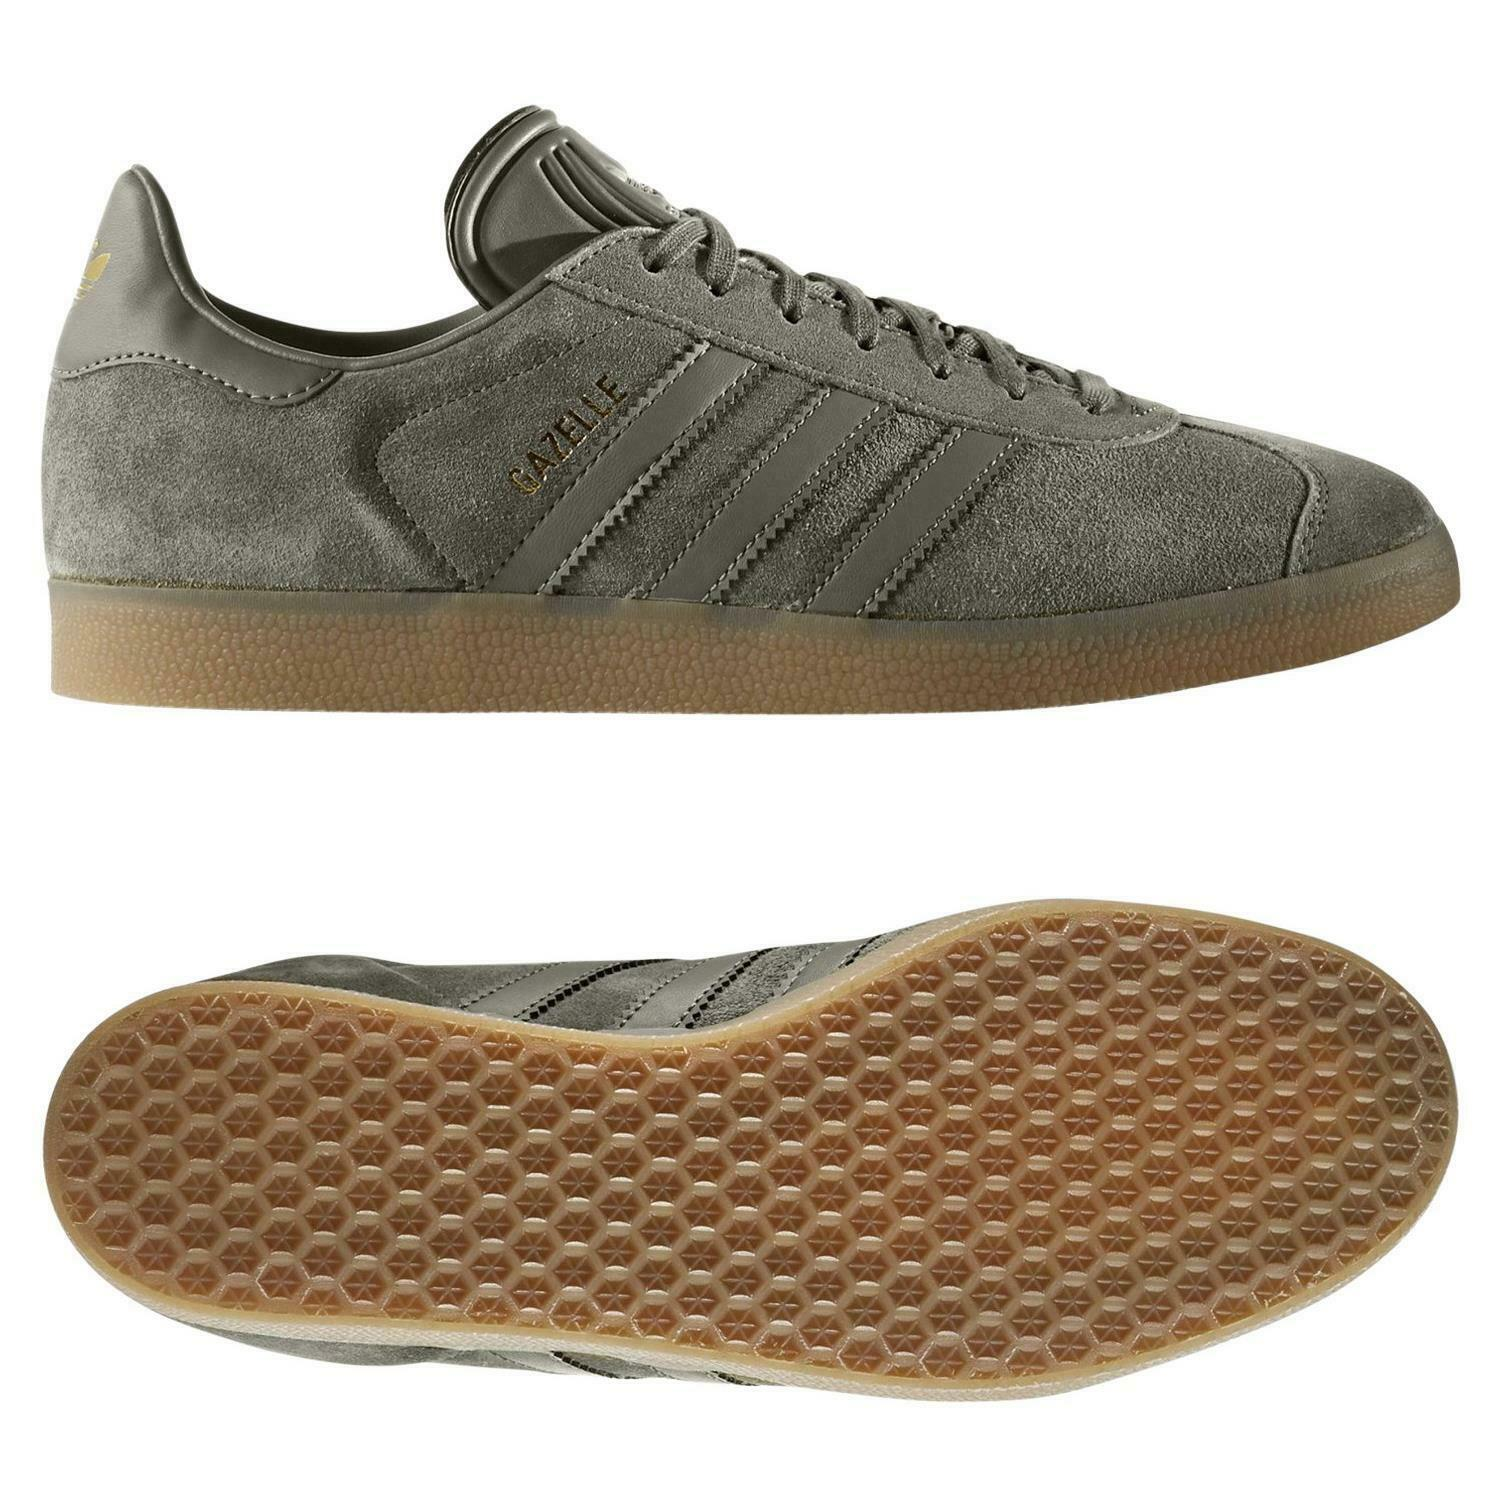 Adidas originals mens gazelle gris trainers zapatos casual football